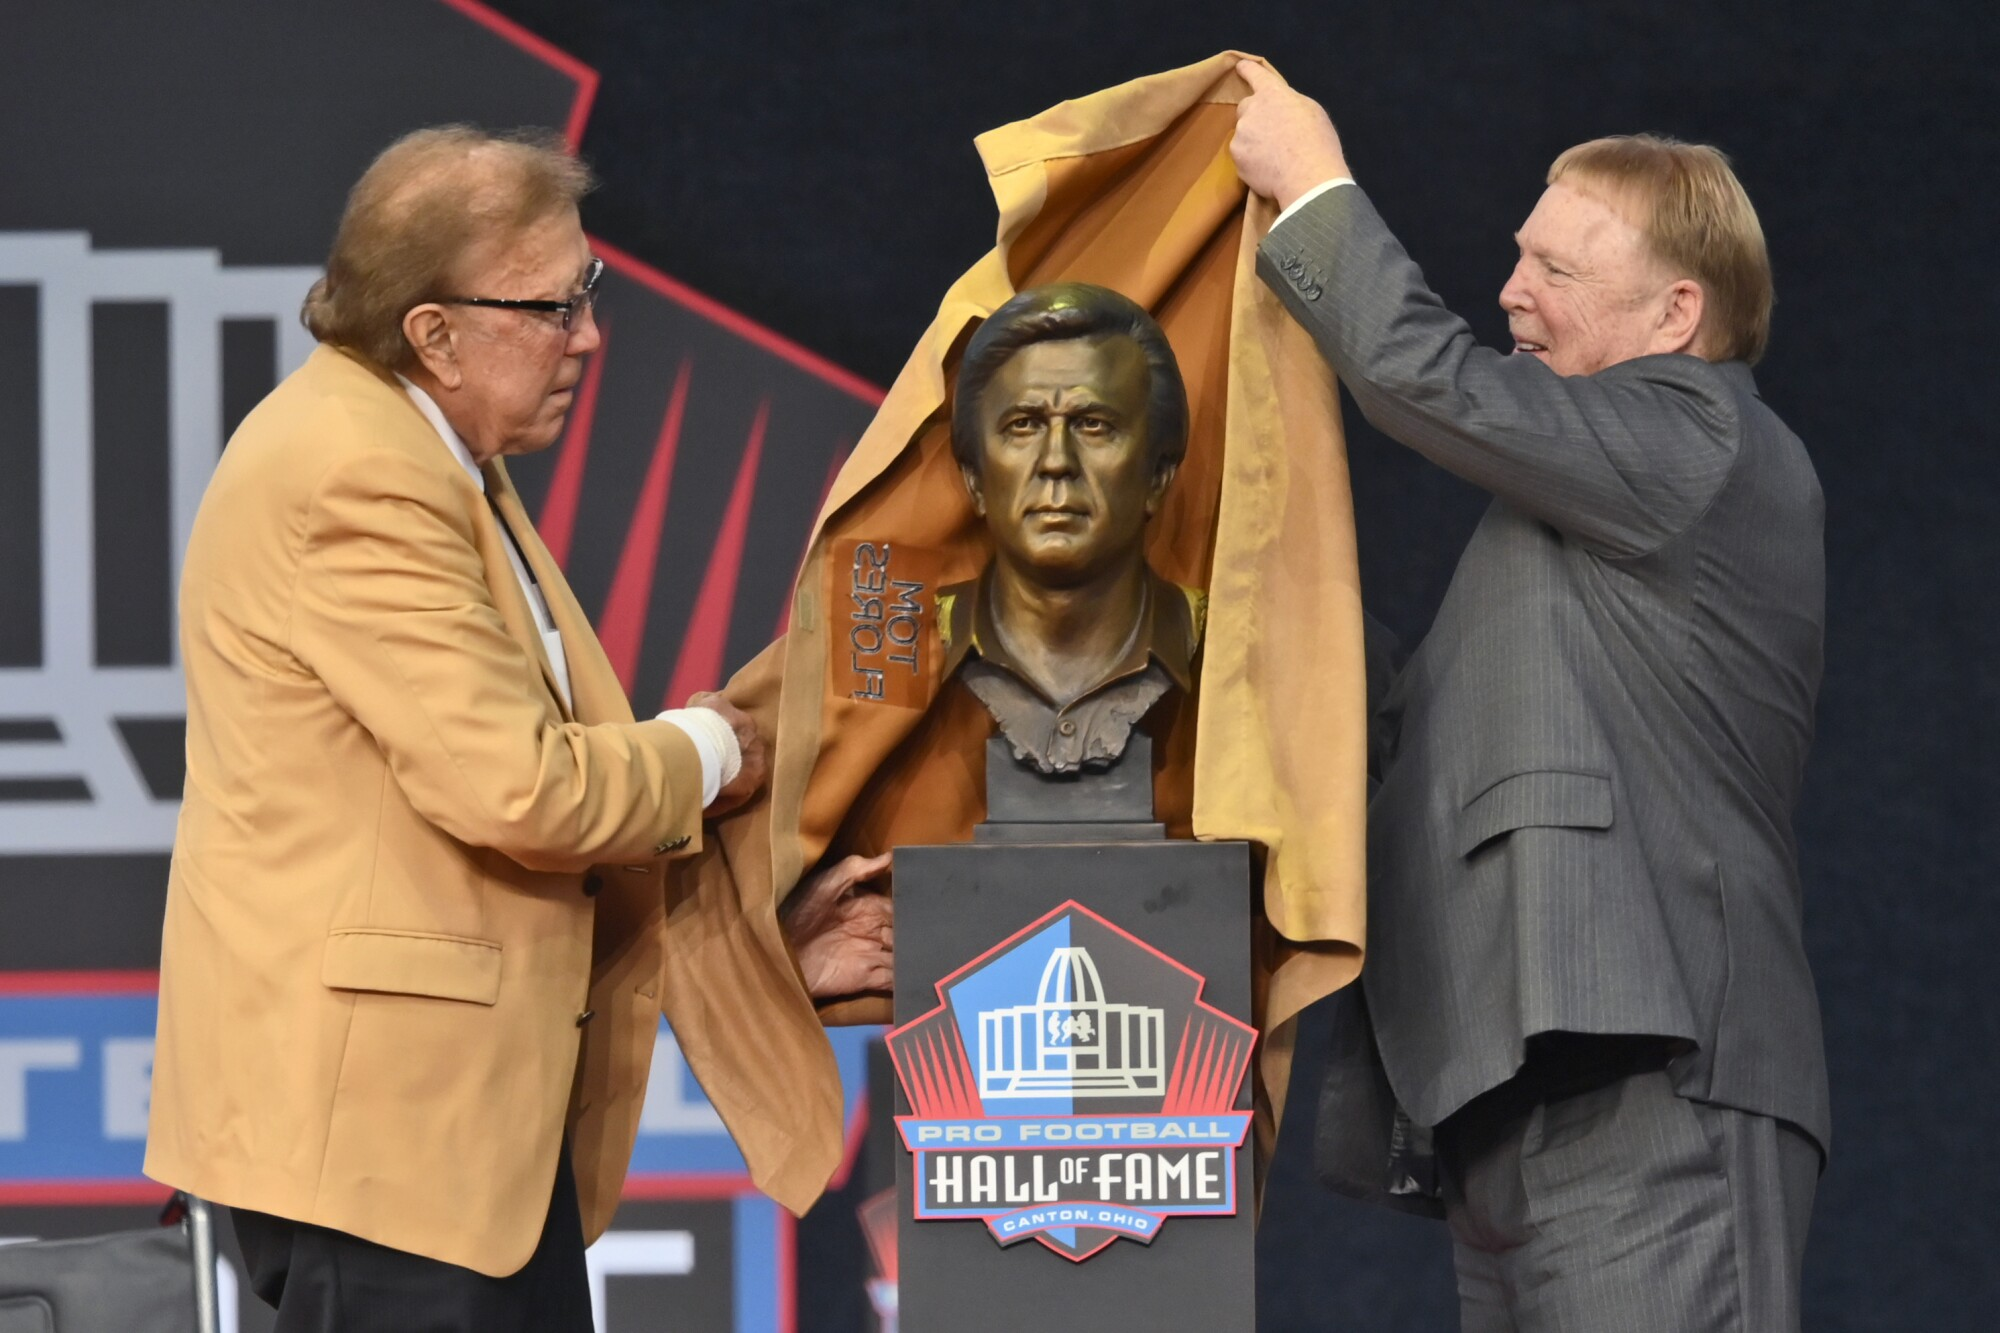 Tom Flores and Raiders owner Mark Davis unveil the bust of Flores at the induction ceremony at the Pro Football Hall of Fame.